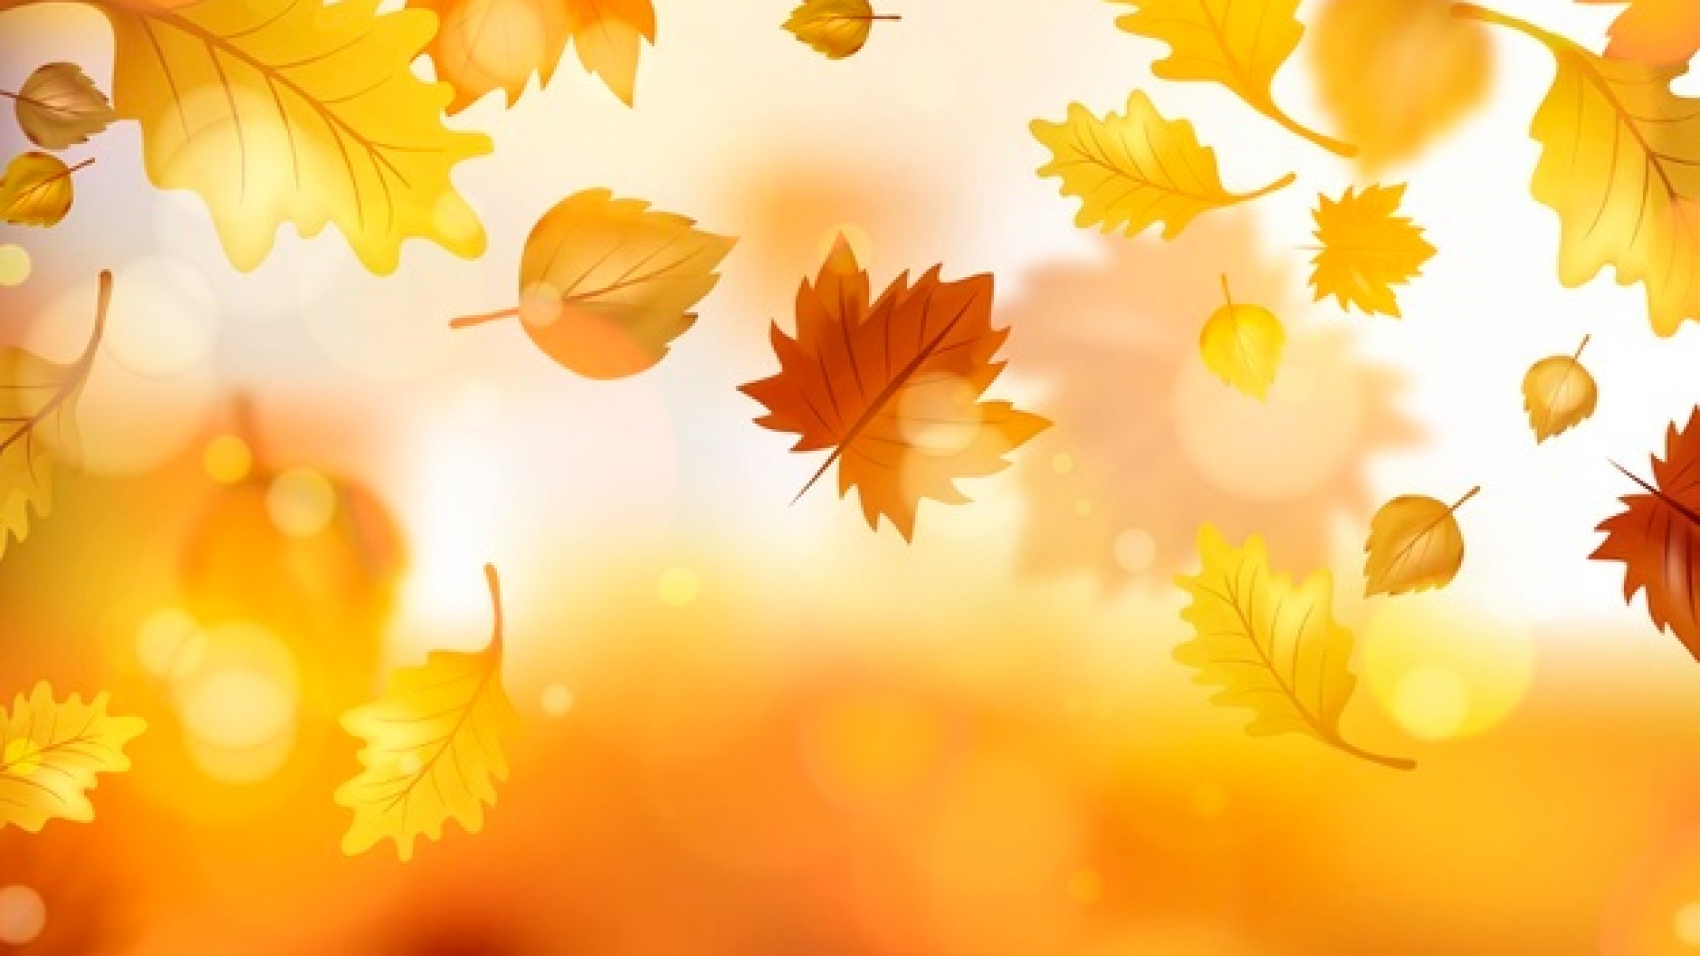 realistic-autumn-leaves-background_52683-43835